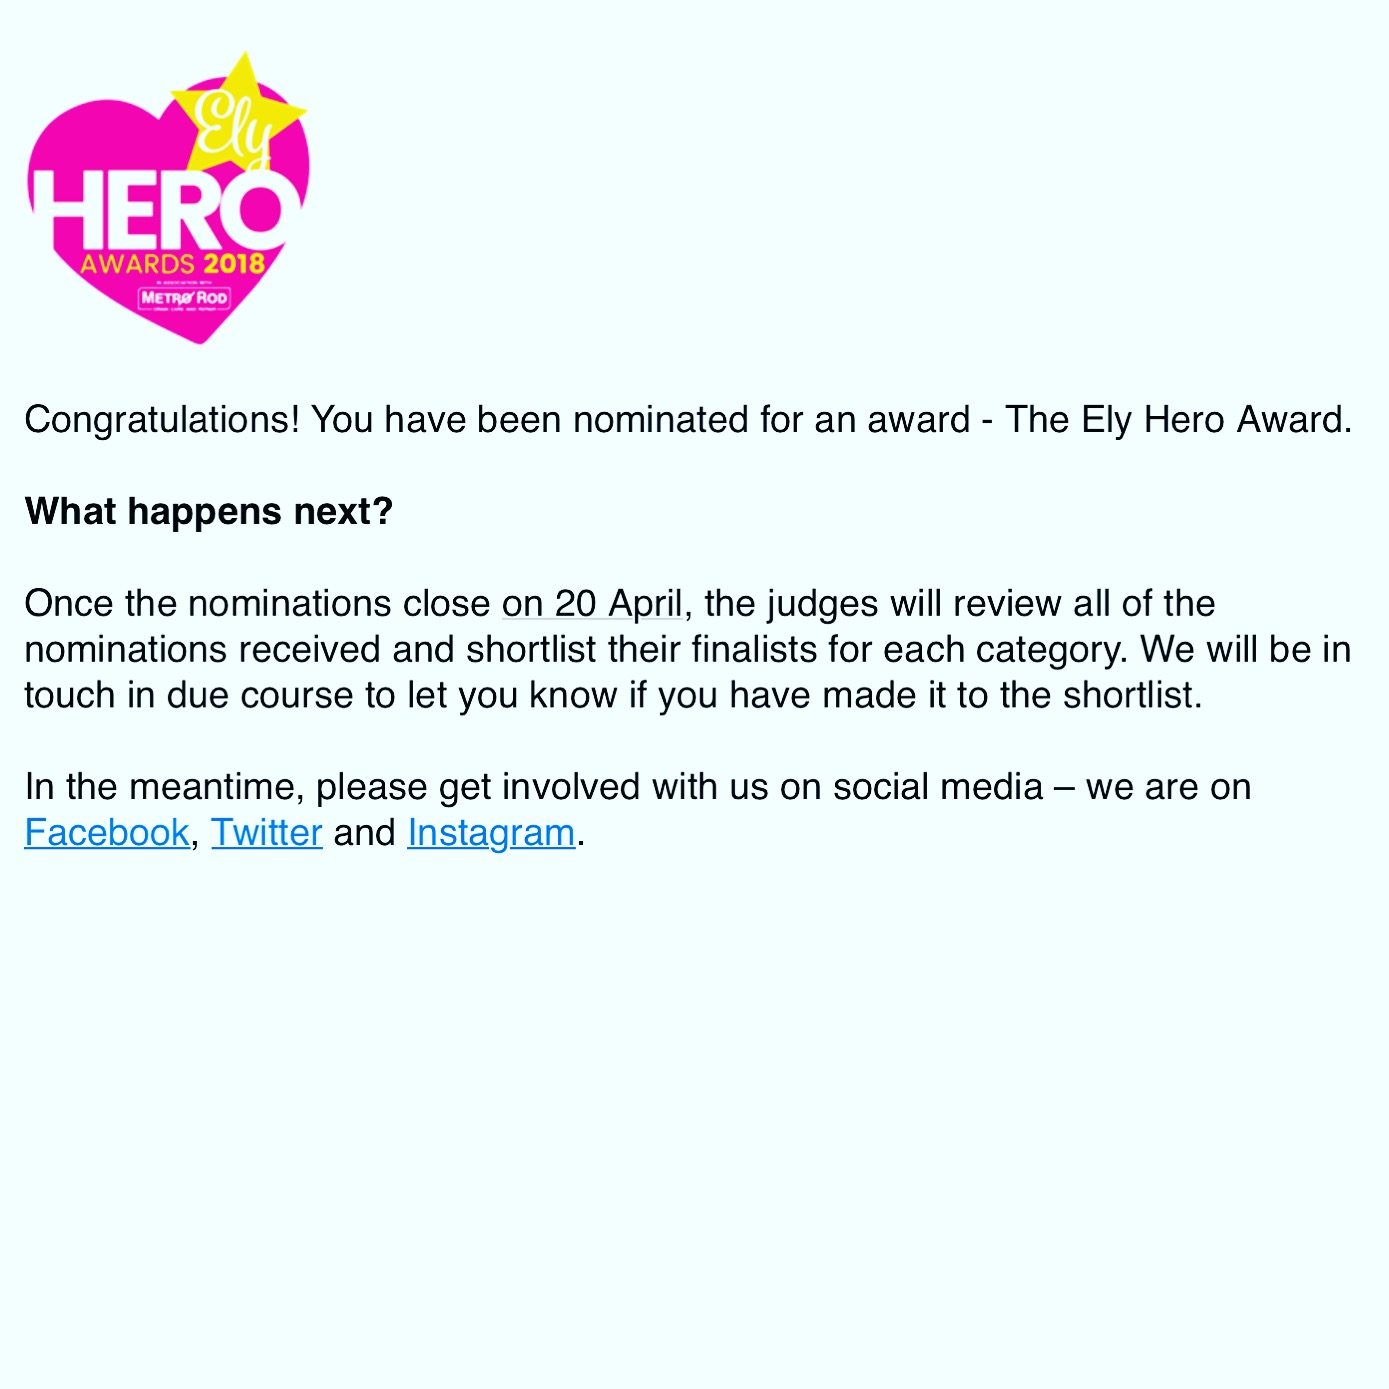 ely hero awards 2018 hypnotherapy